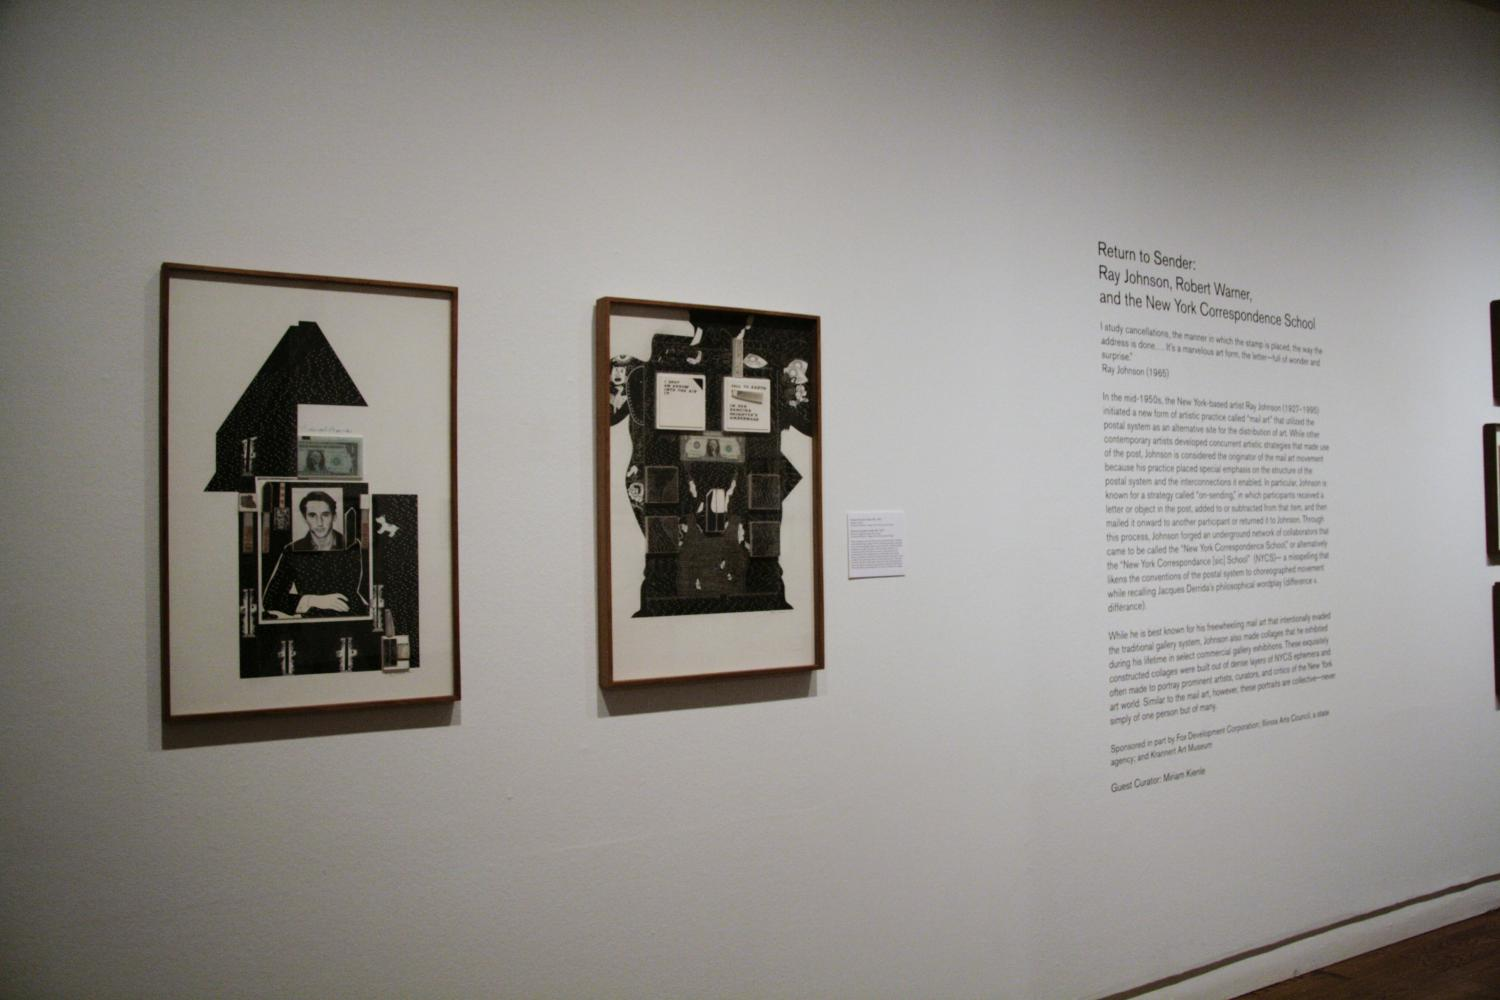 Return to Sender: Ray Johnson, Robert Warner, and the New York Correspondence School, installation view at Krannert Art Museum, 2013.